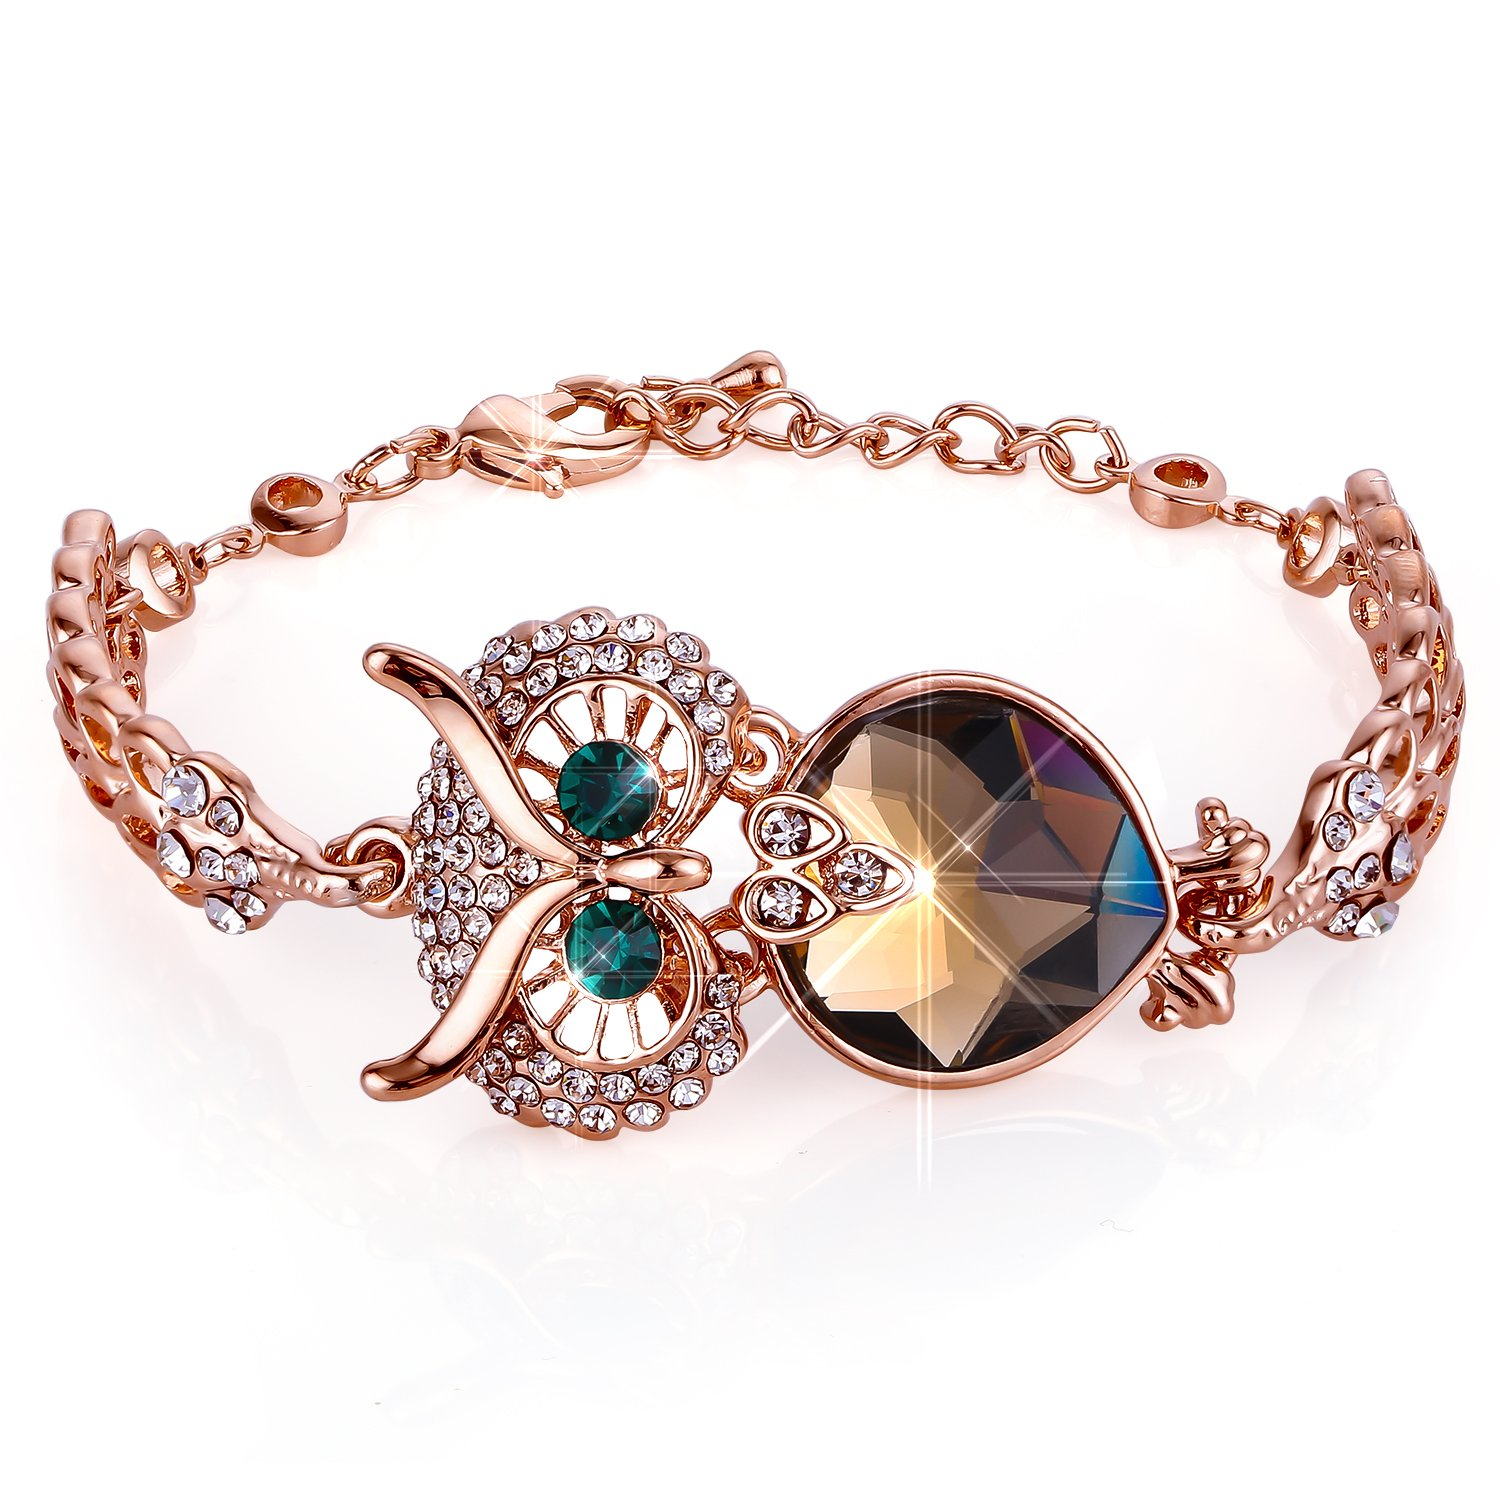 Menton Ezil Lucky Owl Bracelets With Turquoise Jewelry Charms Antique Golden Rhinestone Crystal for Womens Girls Gifts